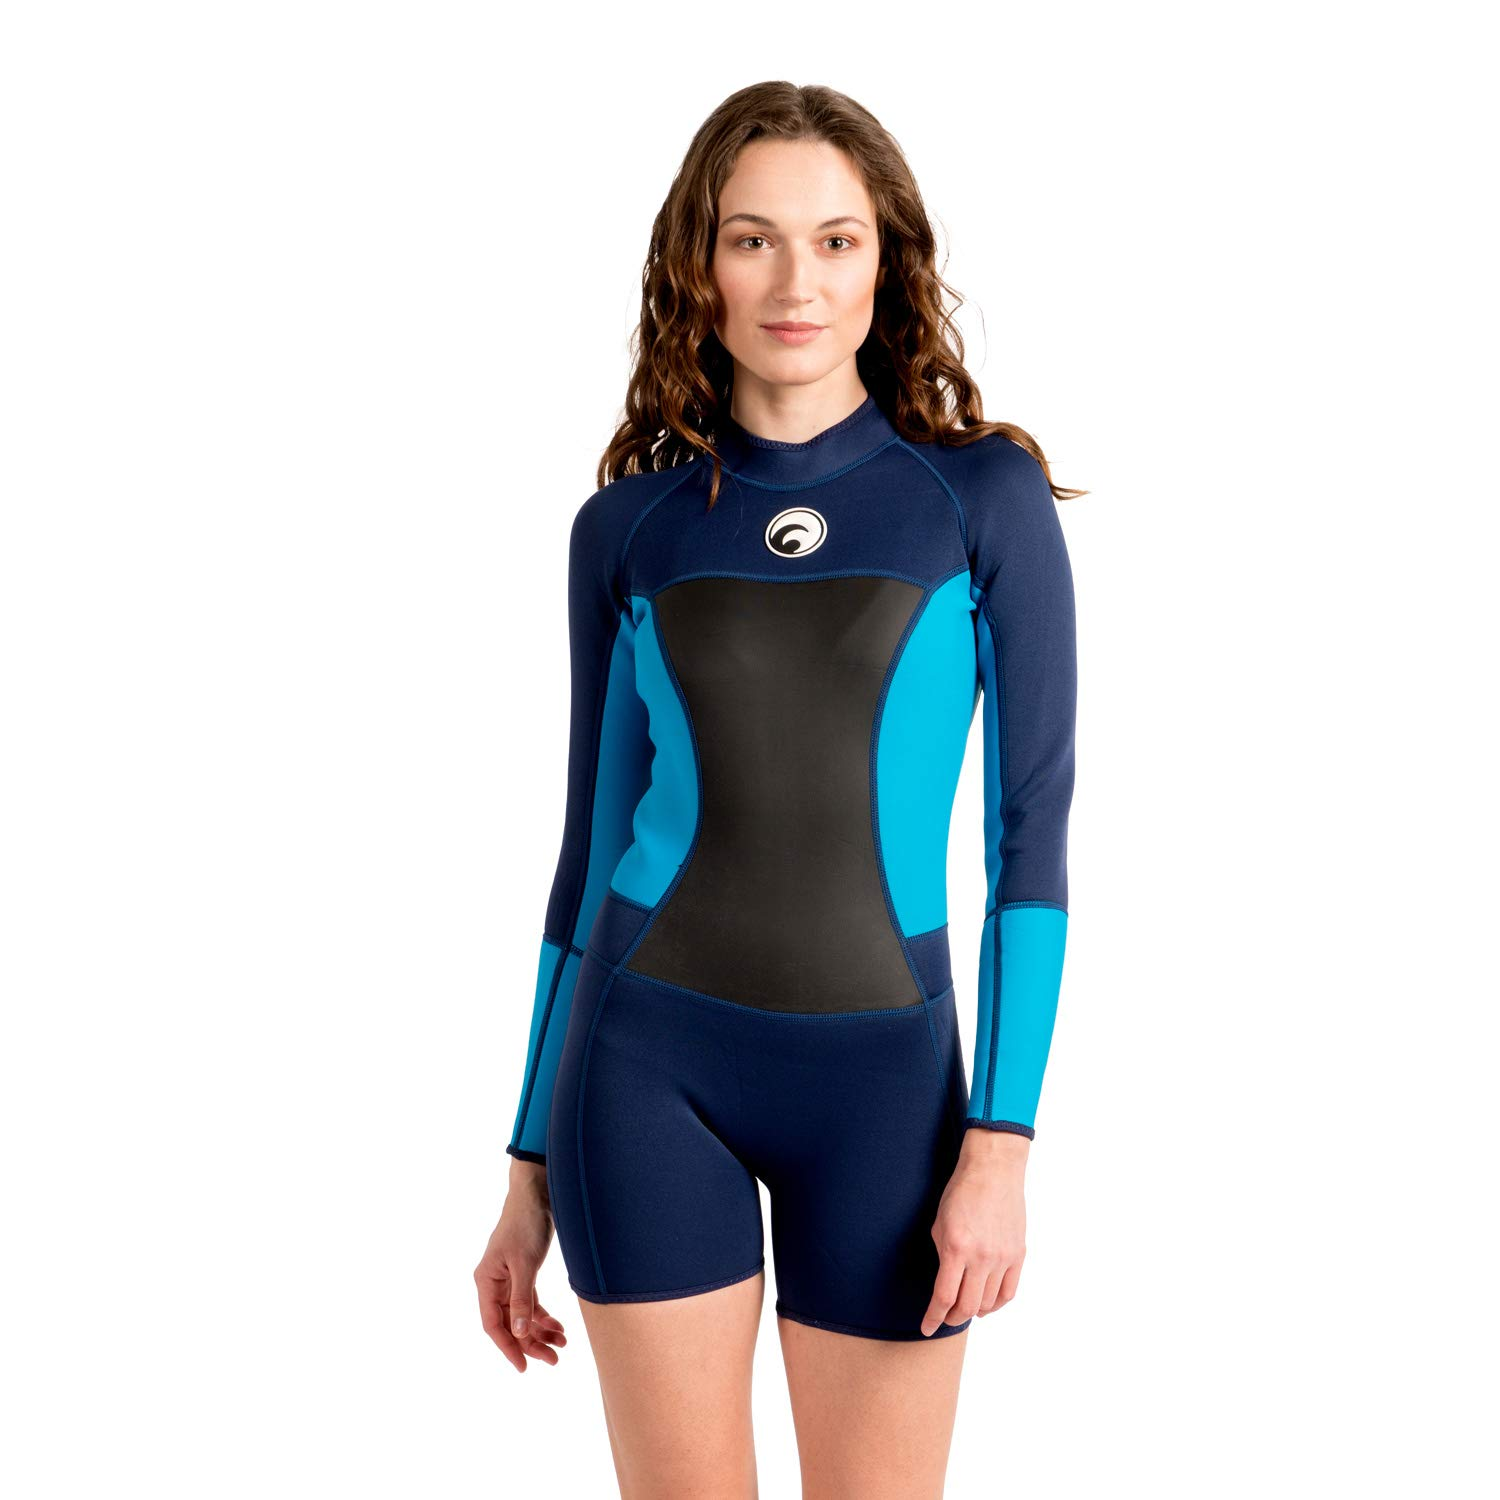 Scubadonkey 1.5 mm Neoprene Shorty Wetsuit for Women | Long Sleeve | for Surfing Scuba Diving Swimming Kayaking Snorkeling (S) by Scubadonkey